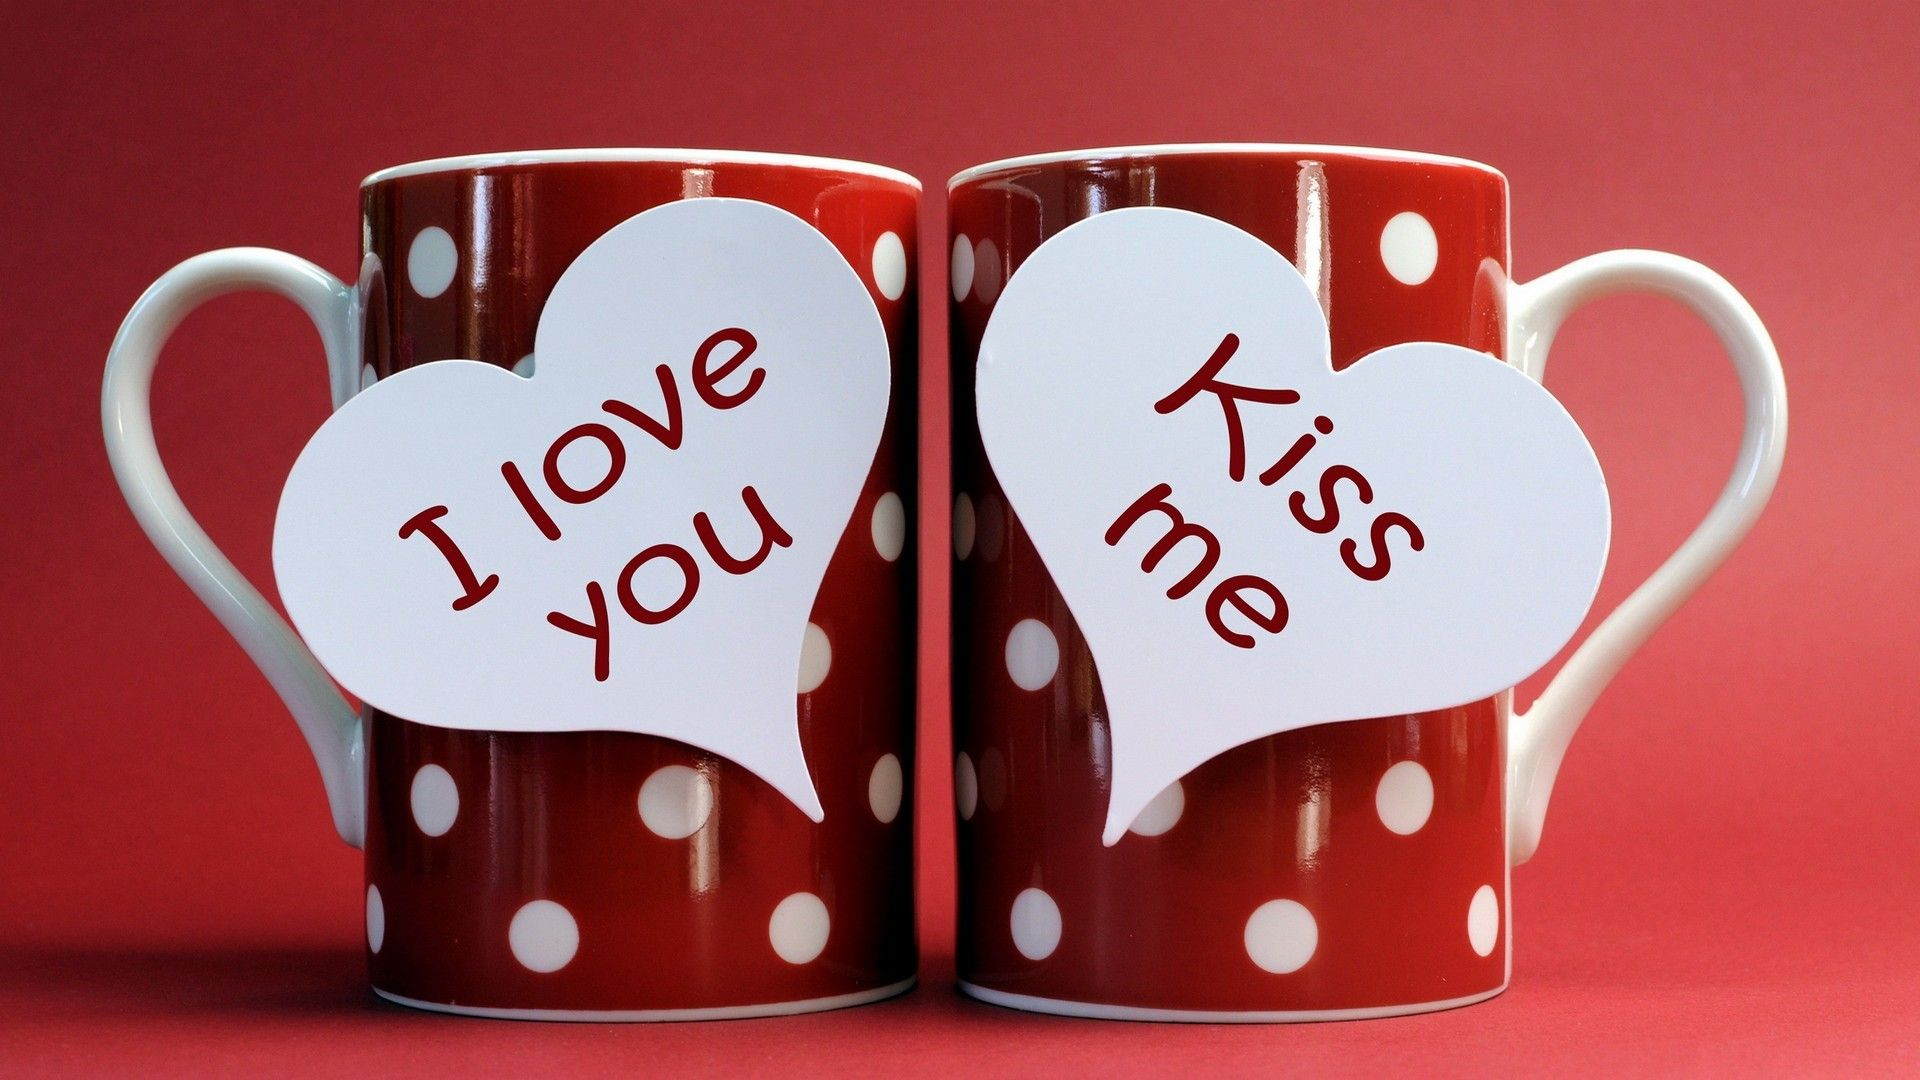 Love You Kiss Me Images Bestpicture1 Org